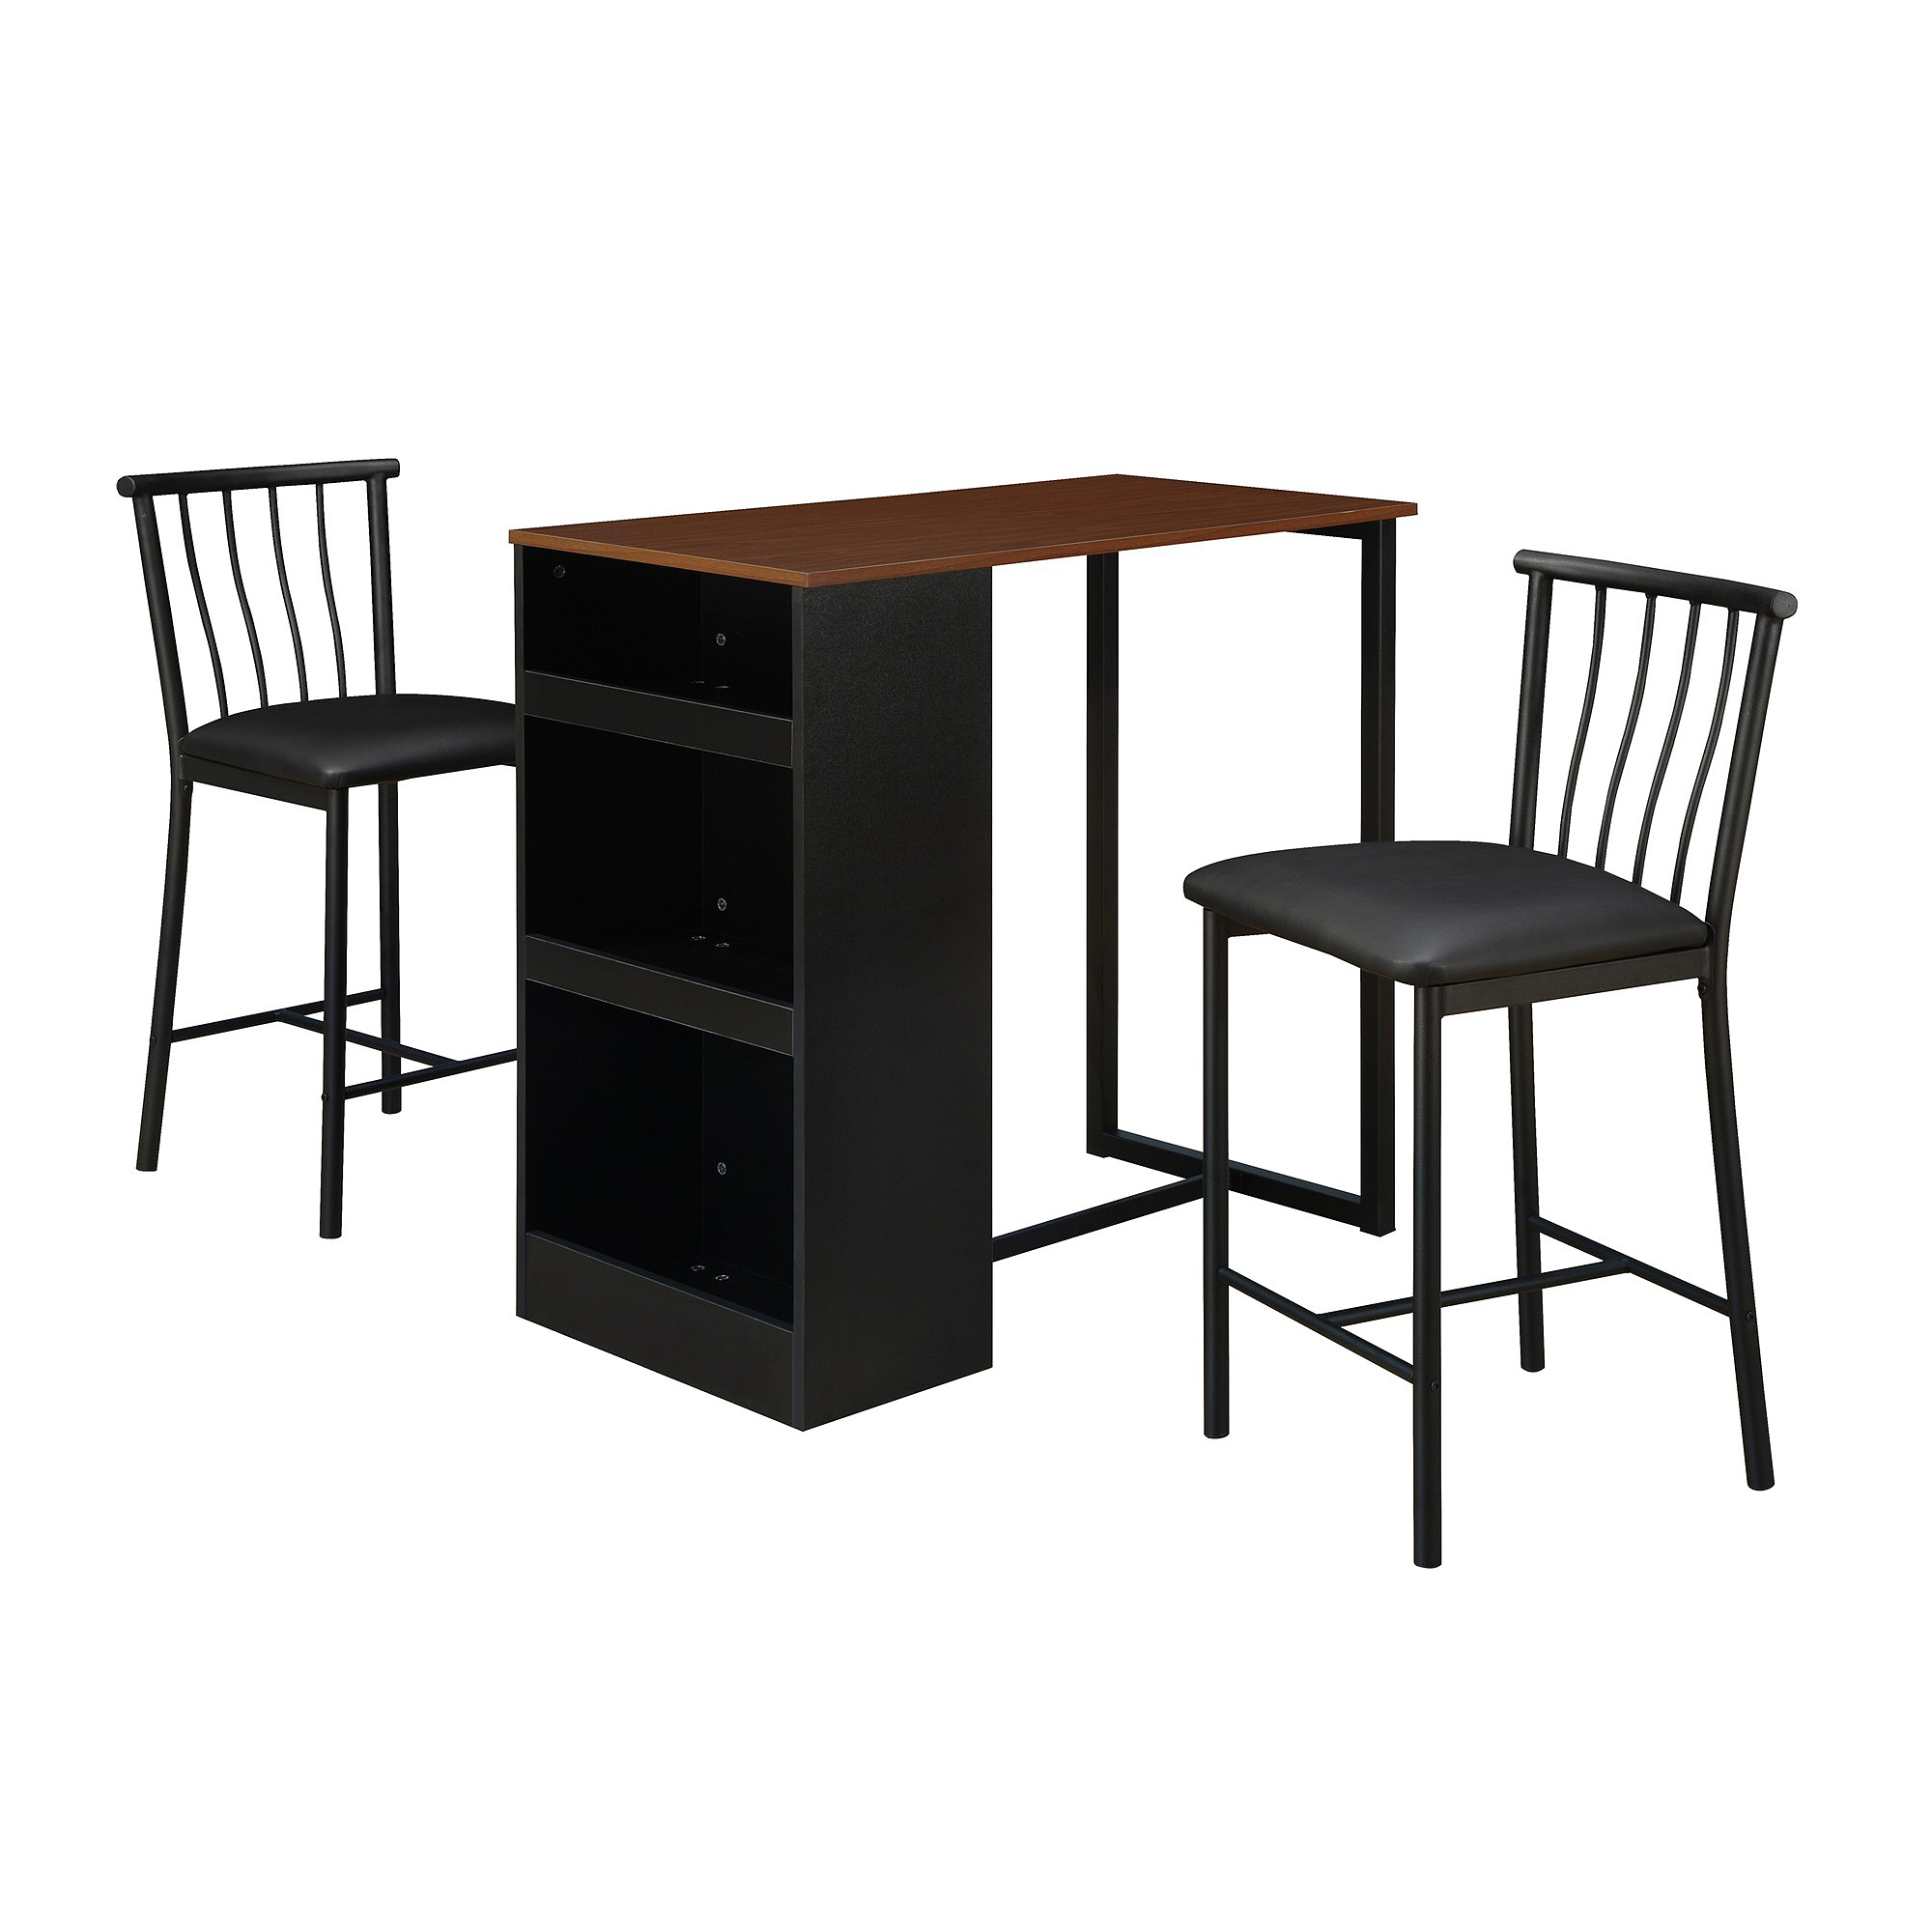 dorel living isla 3piece counter height dining set with storage espresso walmartcom